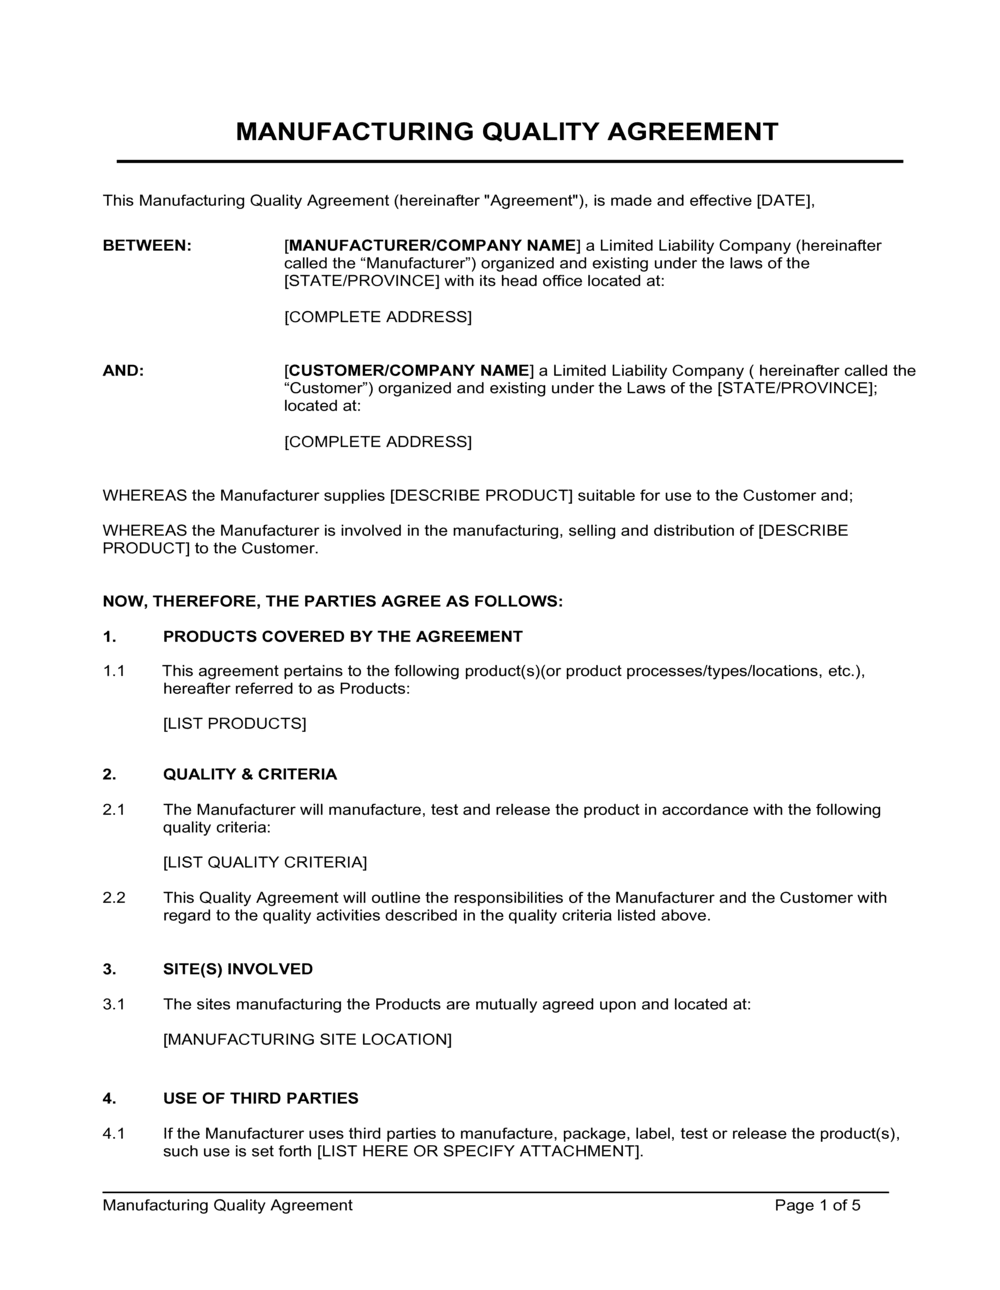 Business-in-a-Box's Manufacturing Quality Agreement Template